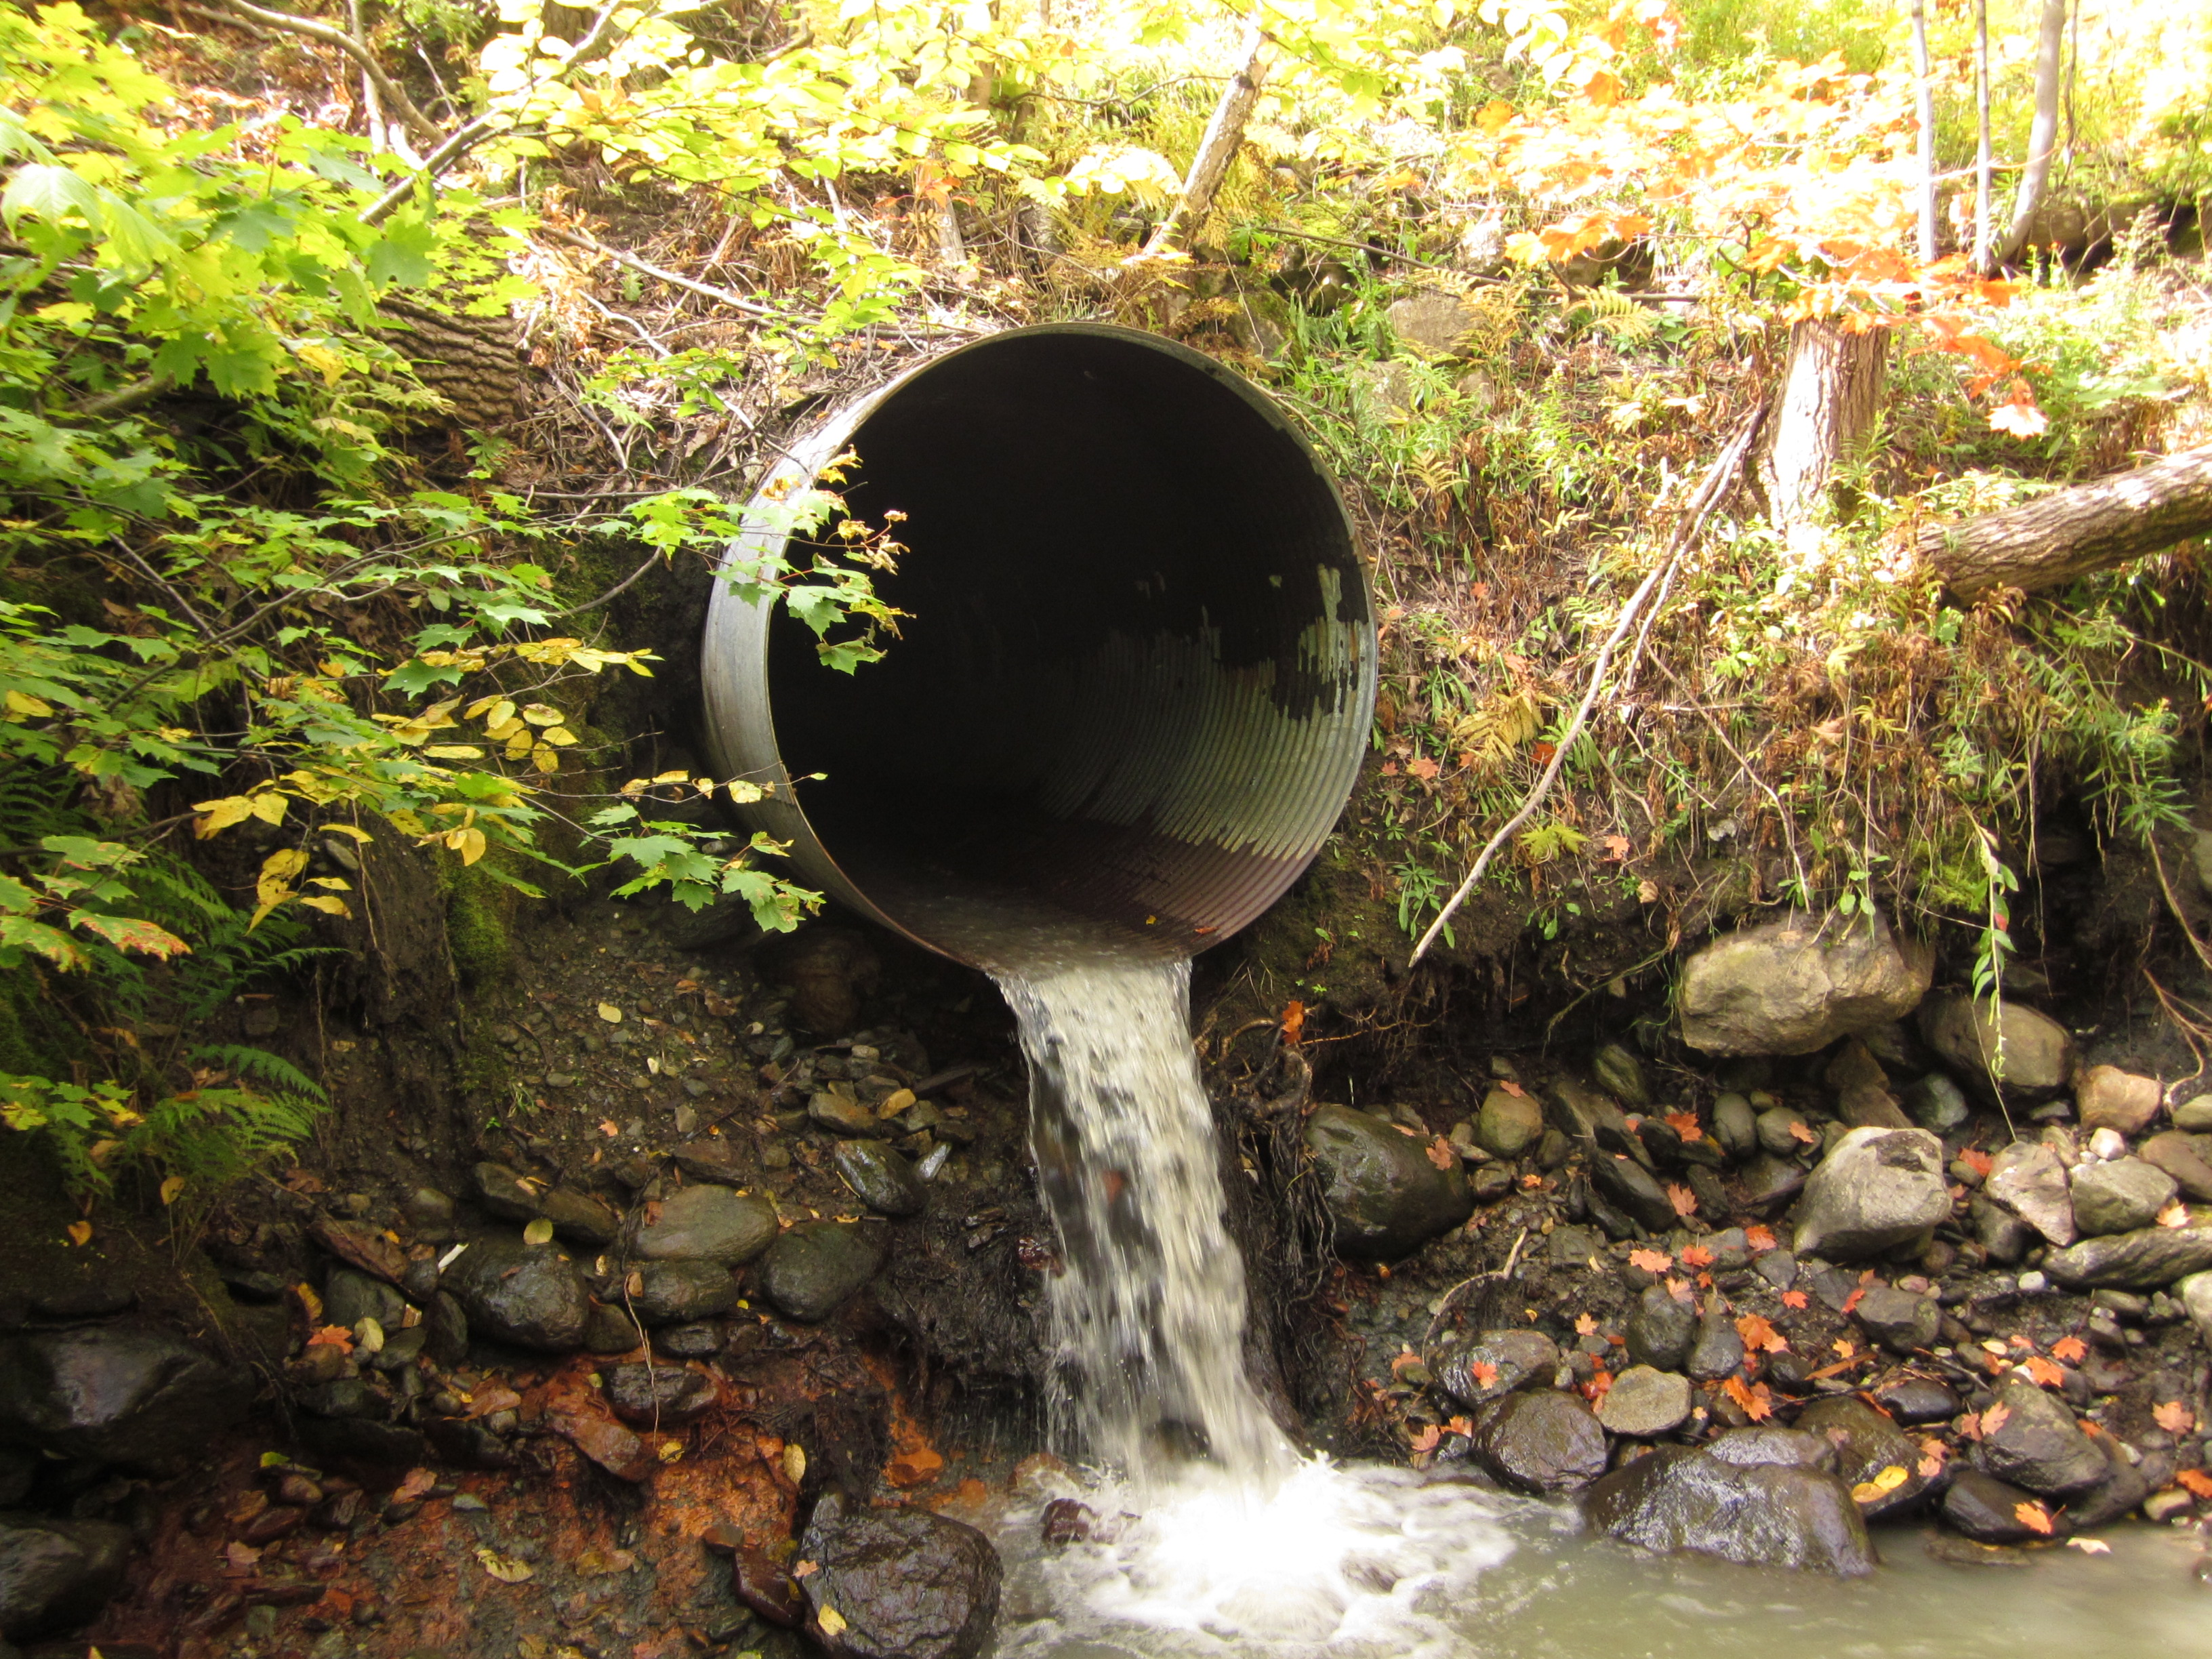 water pours out of a stormwater culvert above a stream.